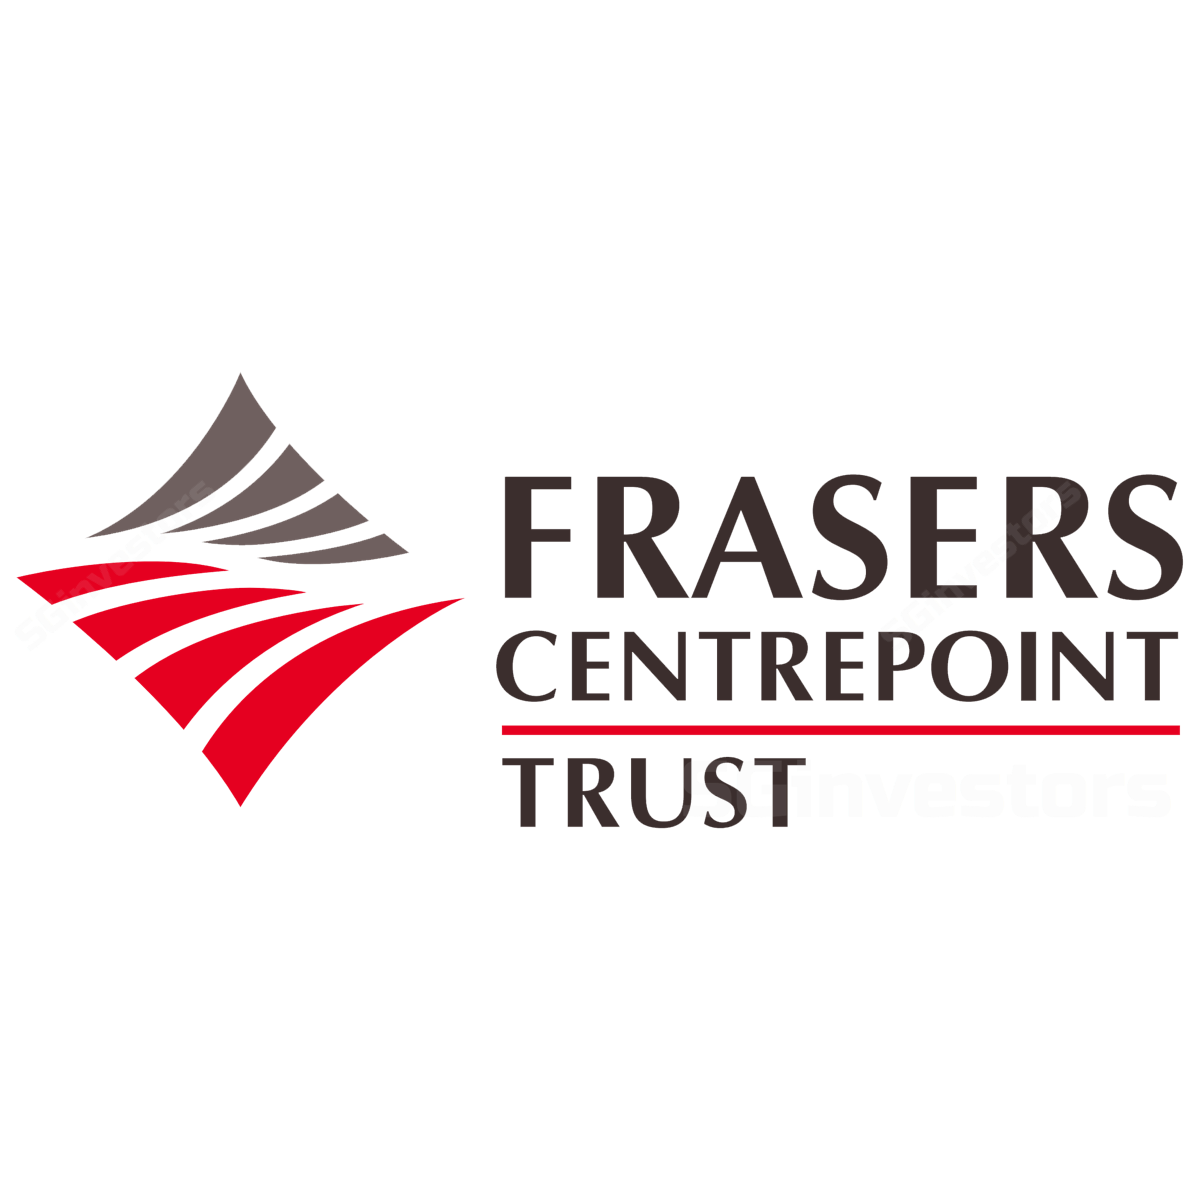 Frasers Centrepoint Trust - CGS-CIMB Research 2018-09-04: A Visit To The Northern Malls